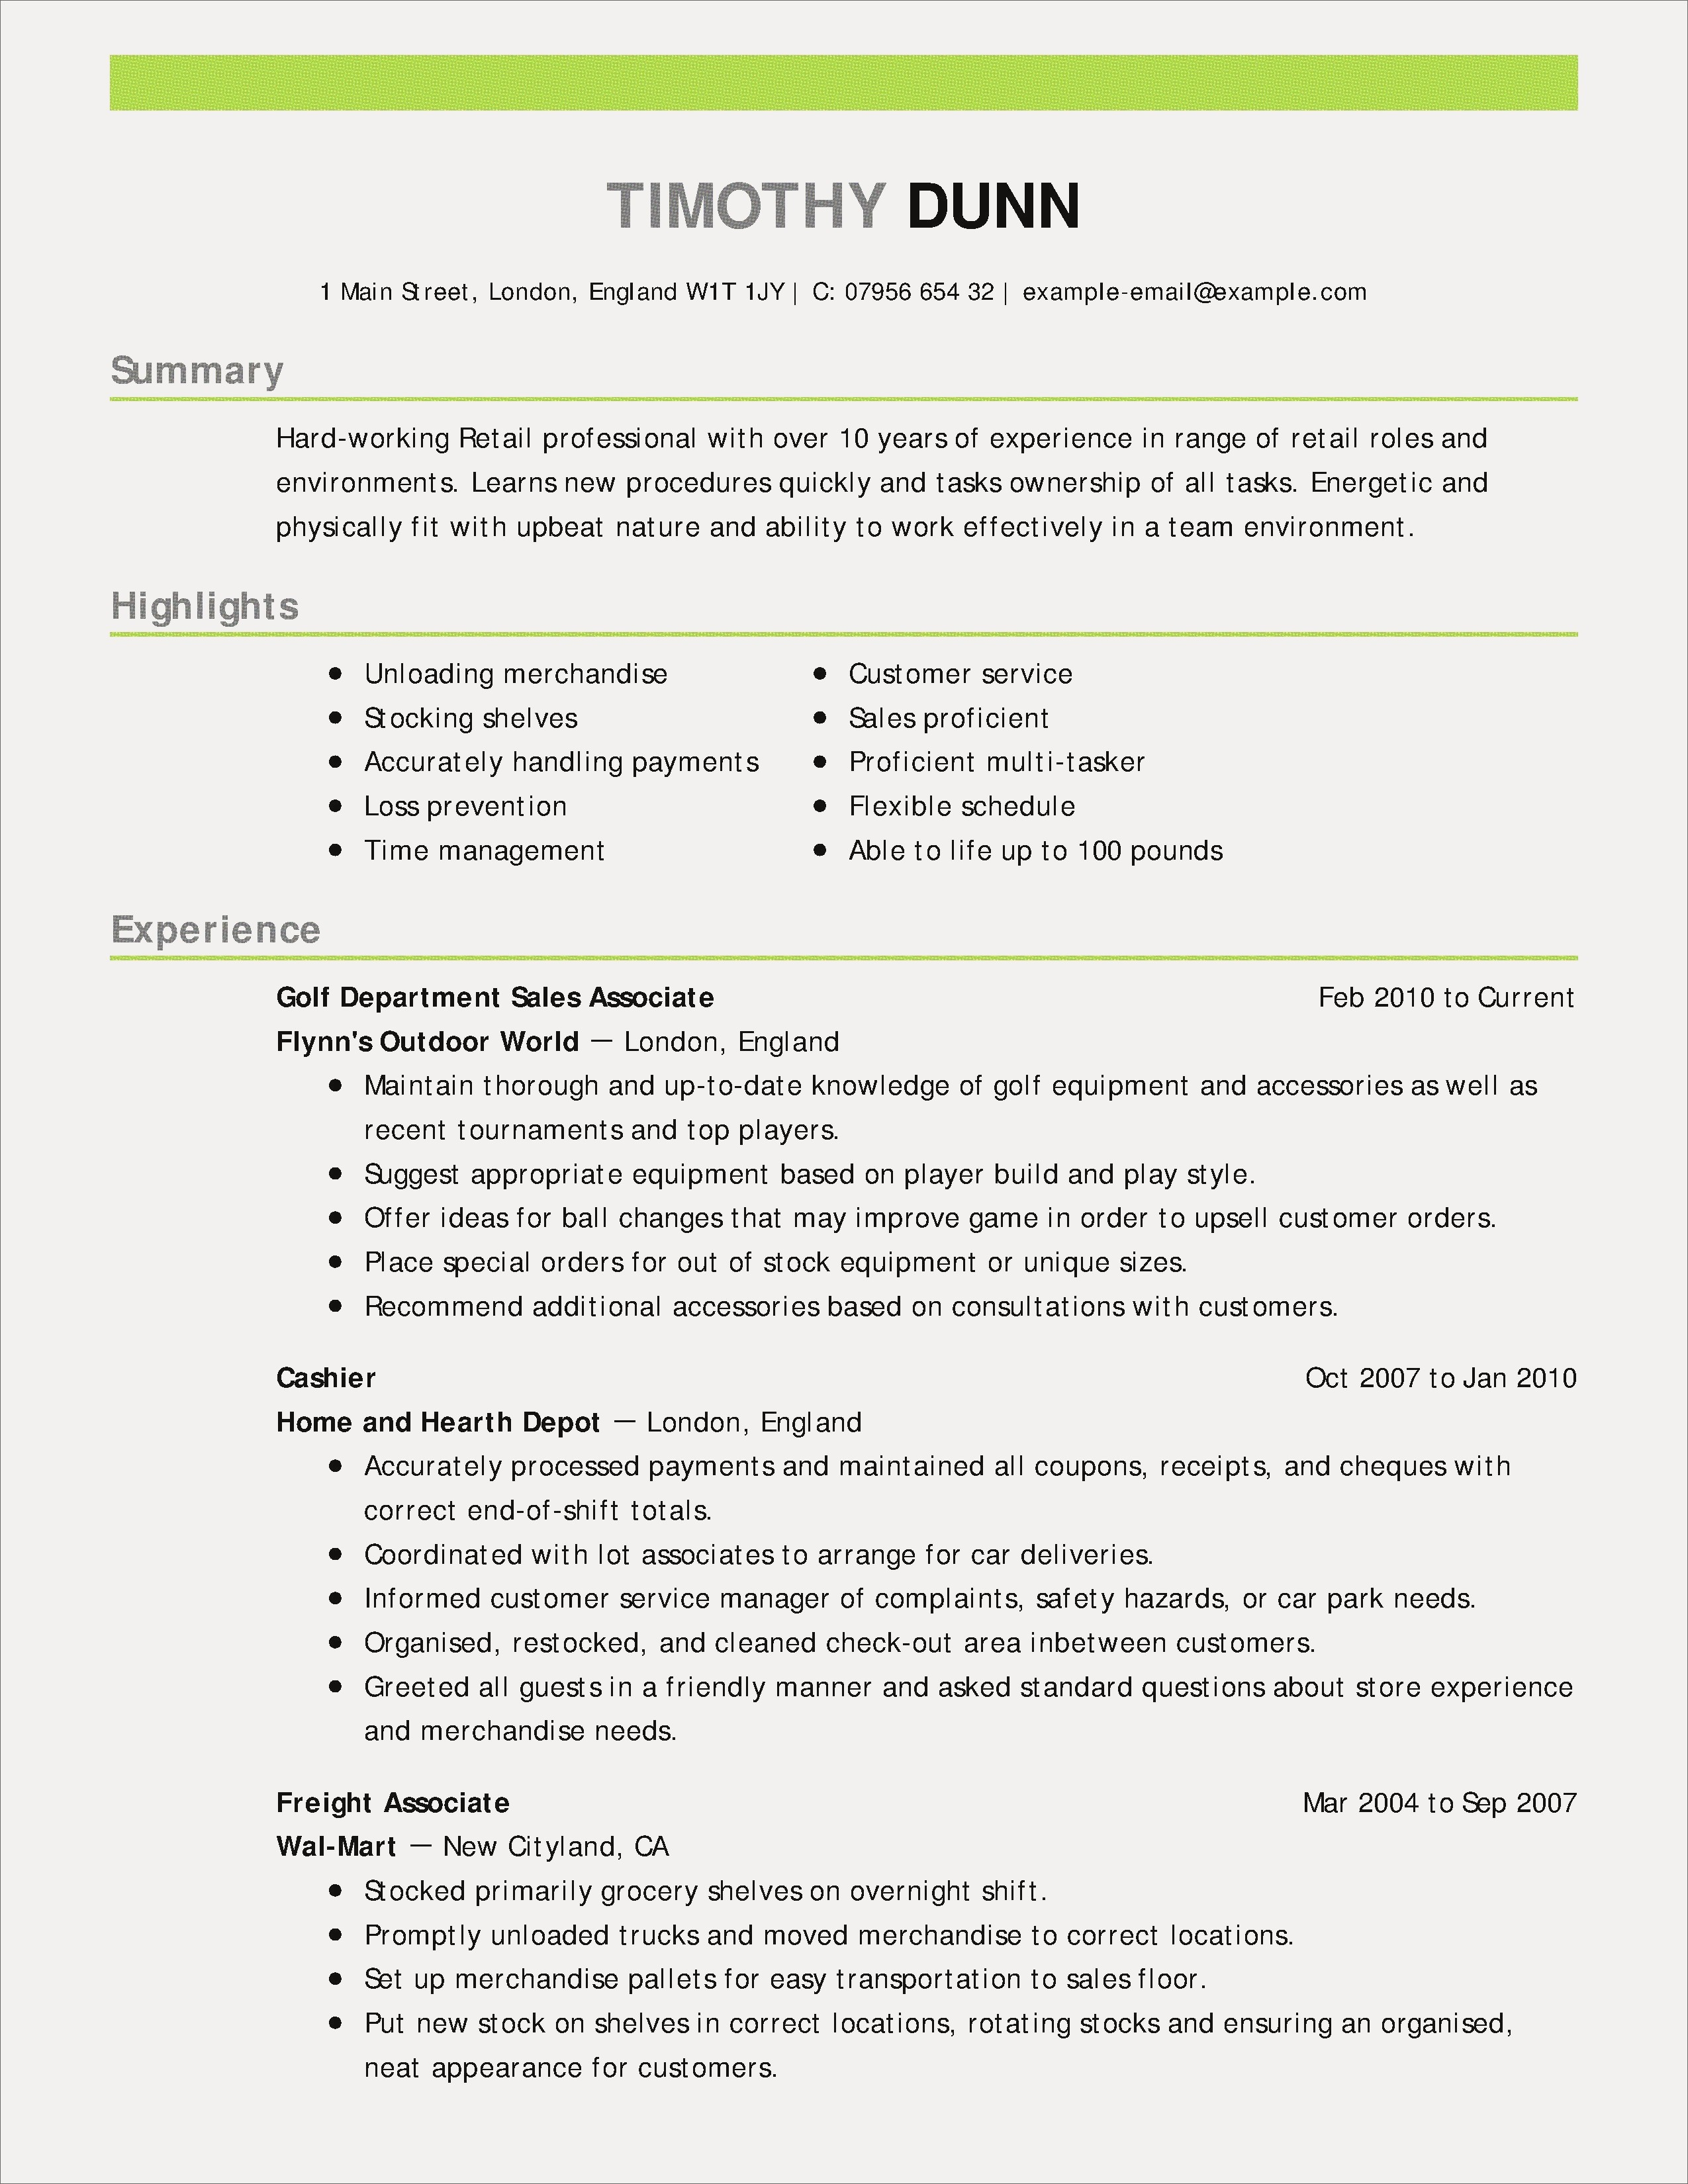 Professional Experience Resume - Resume Sample Experience New Restaurant Resume Sample Unique